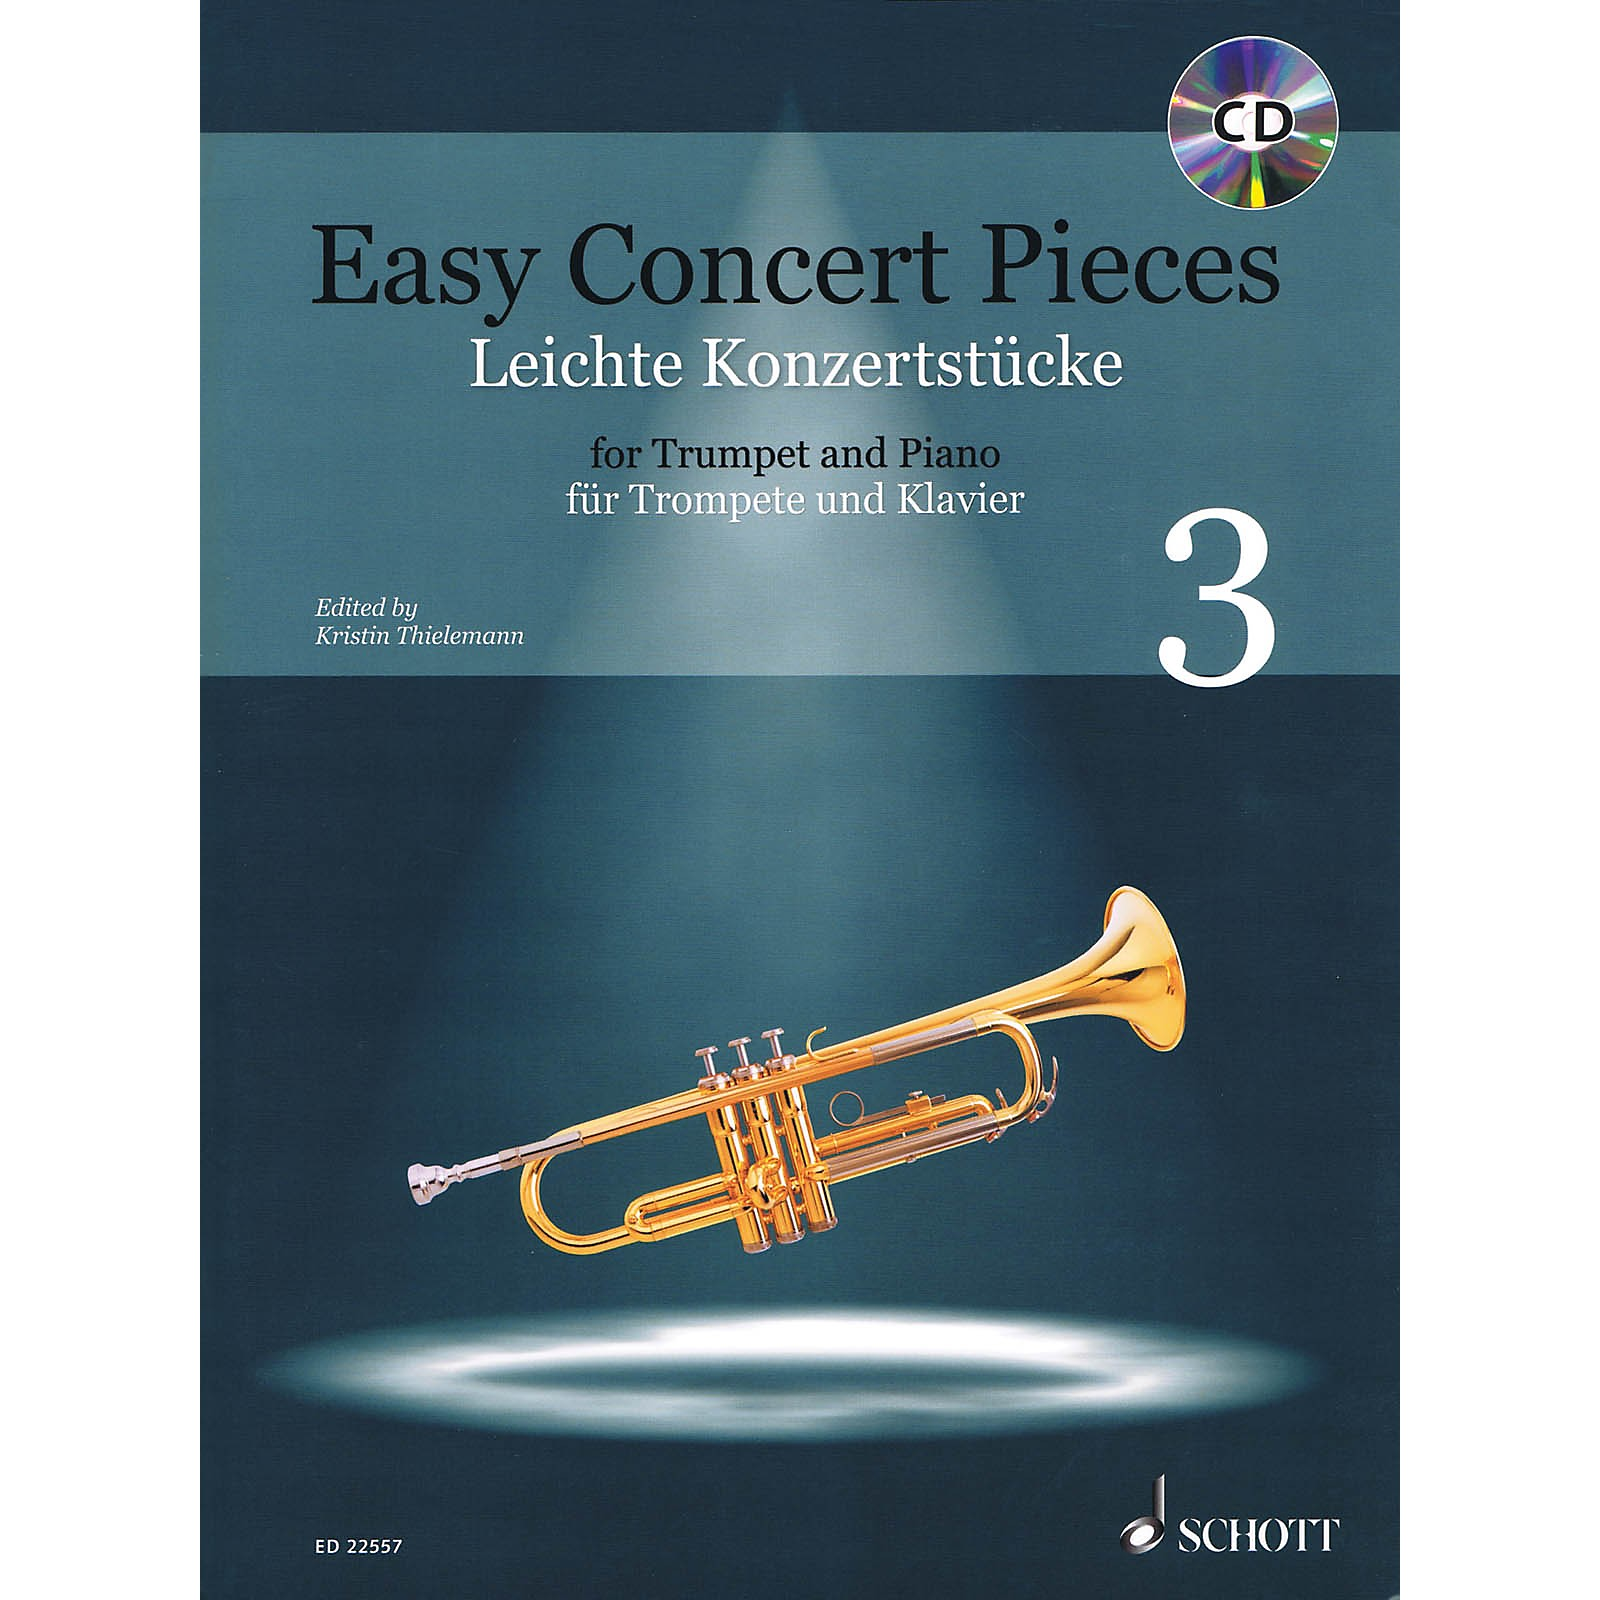 Schott Easy Concert Pieces - 22 Pieces from 5 Centuries for Trumpet and Piano Book/CD